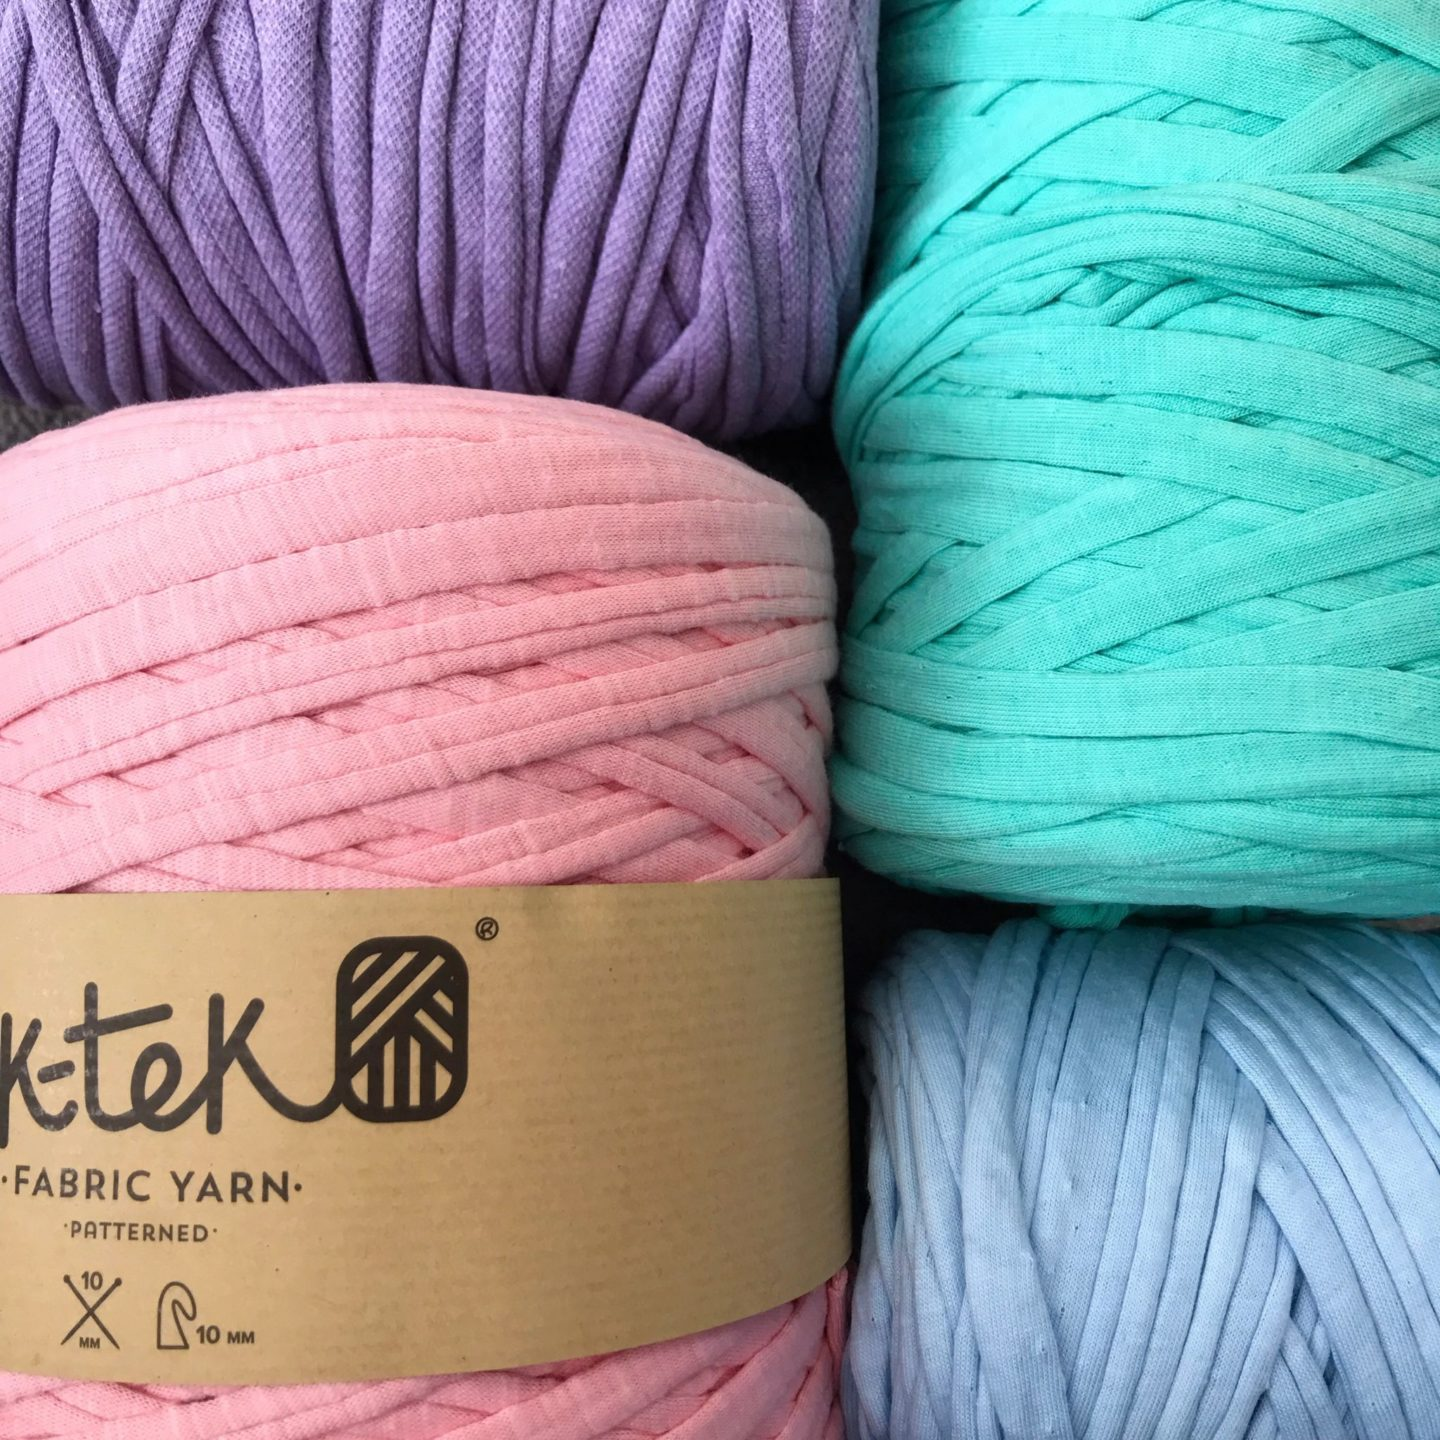 Everything you ever wanted to know about Tshirt Yarn!